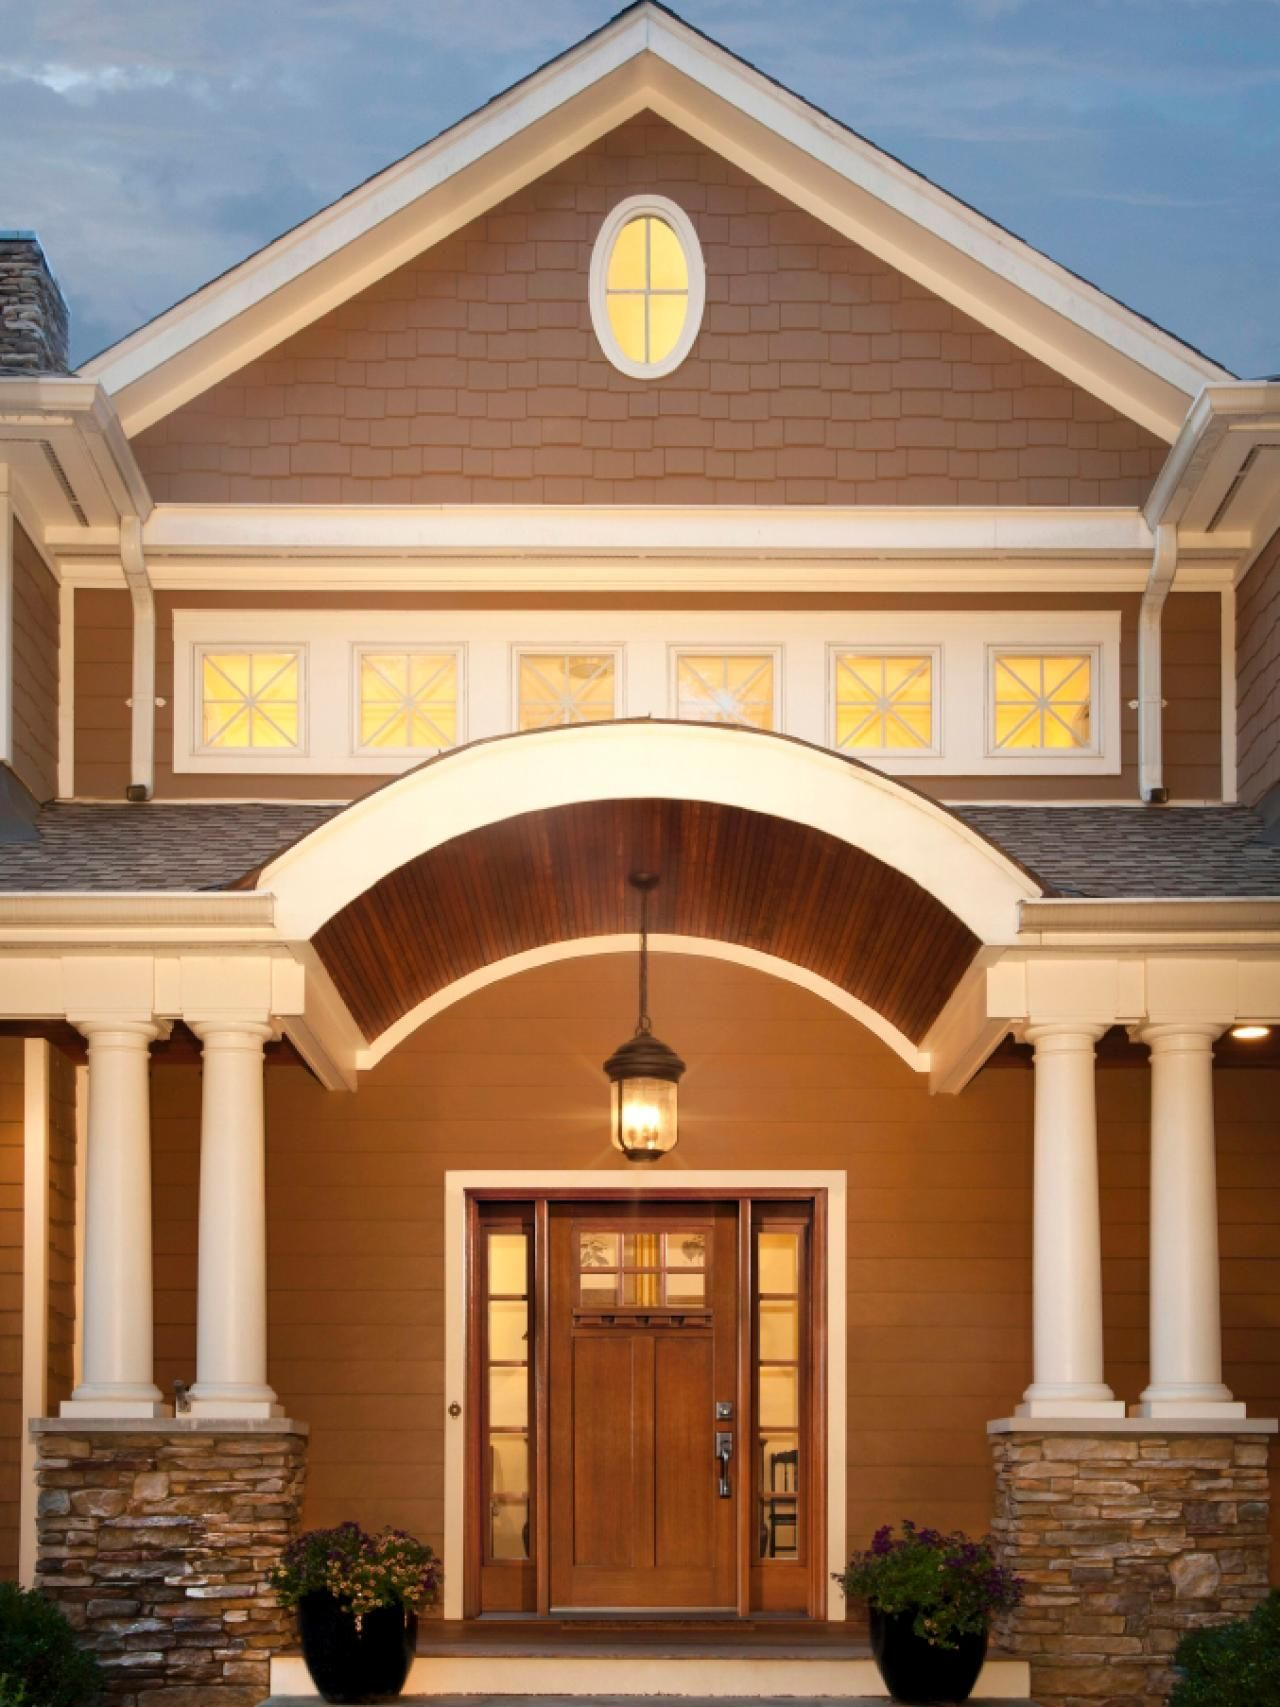 Exterior design for home   Stunning Entryways and Front Door Designs  Front door design